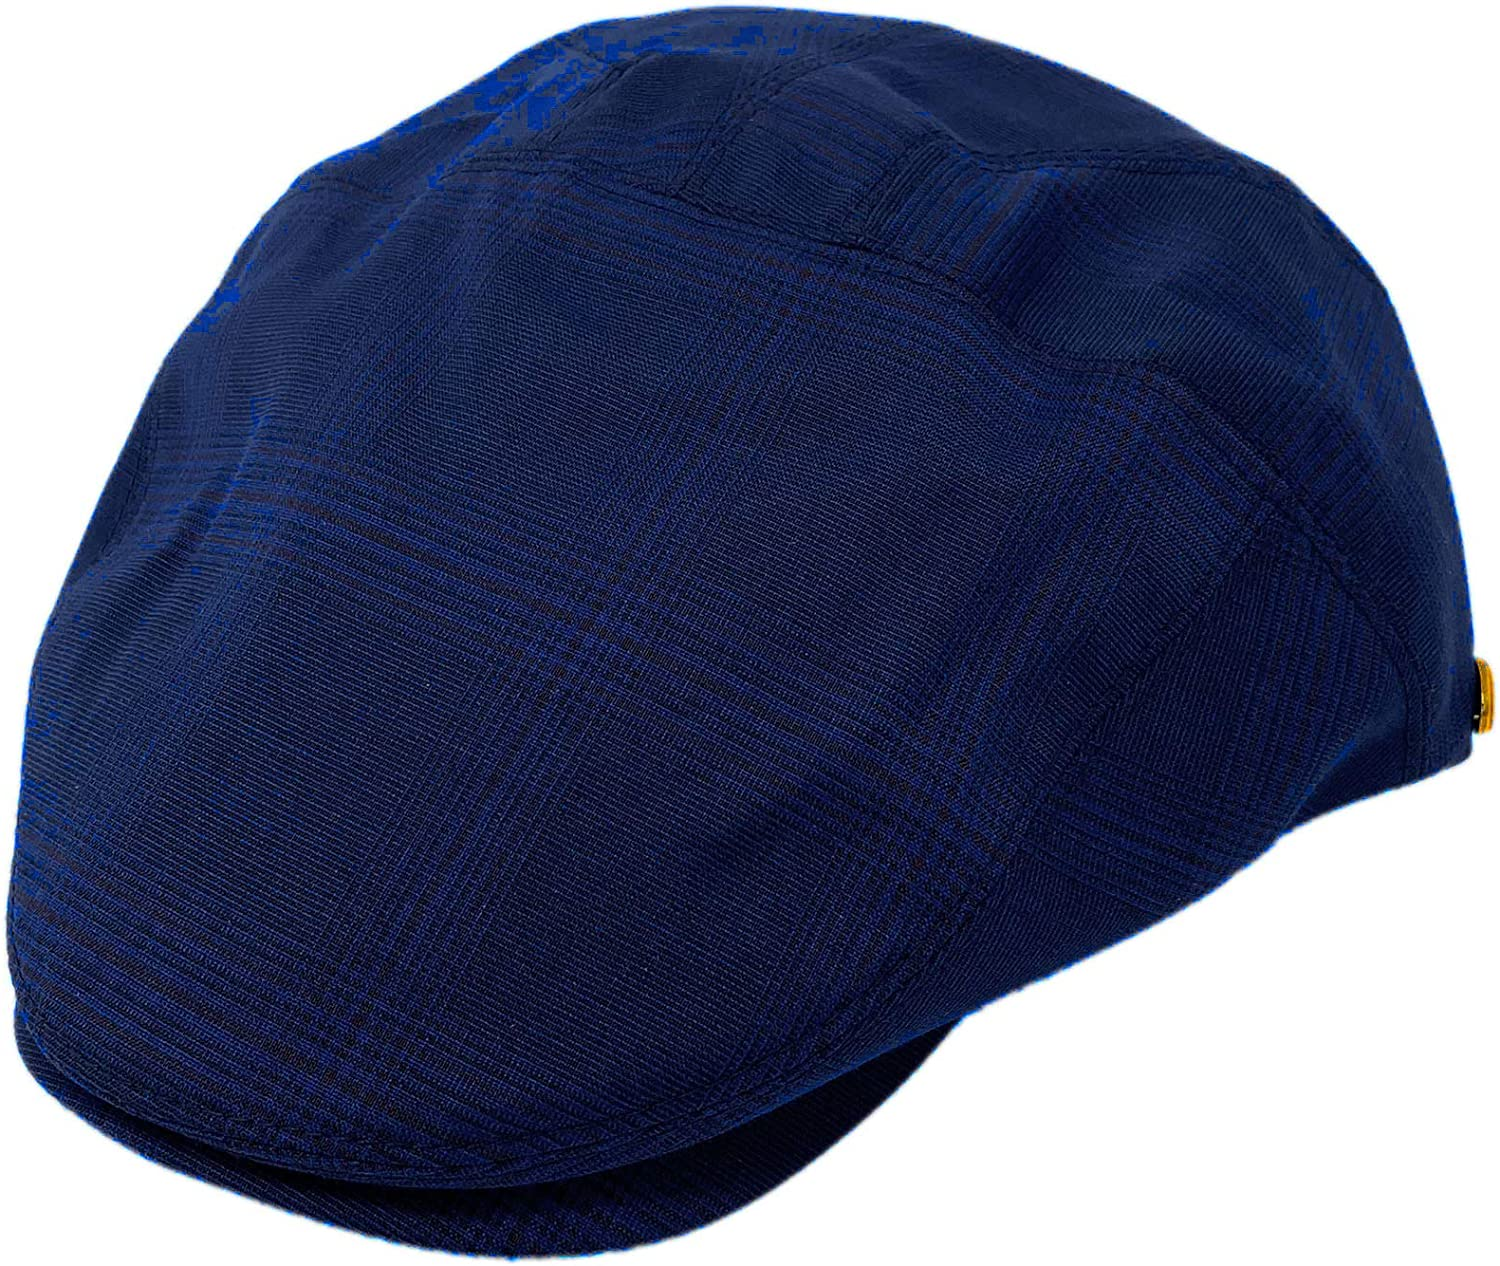 Men's Slim Challenge the lowest price of Japan Summer Max 62% OFF Light Rayon Blend Flat Driver Cabby Ivy Cap Ha